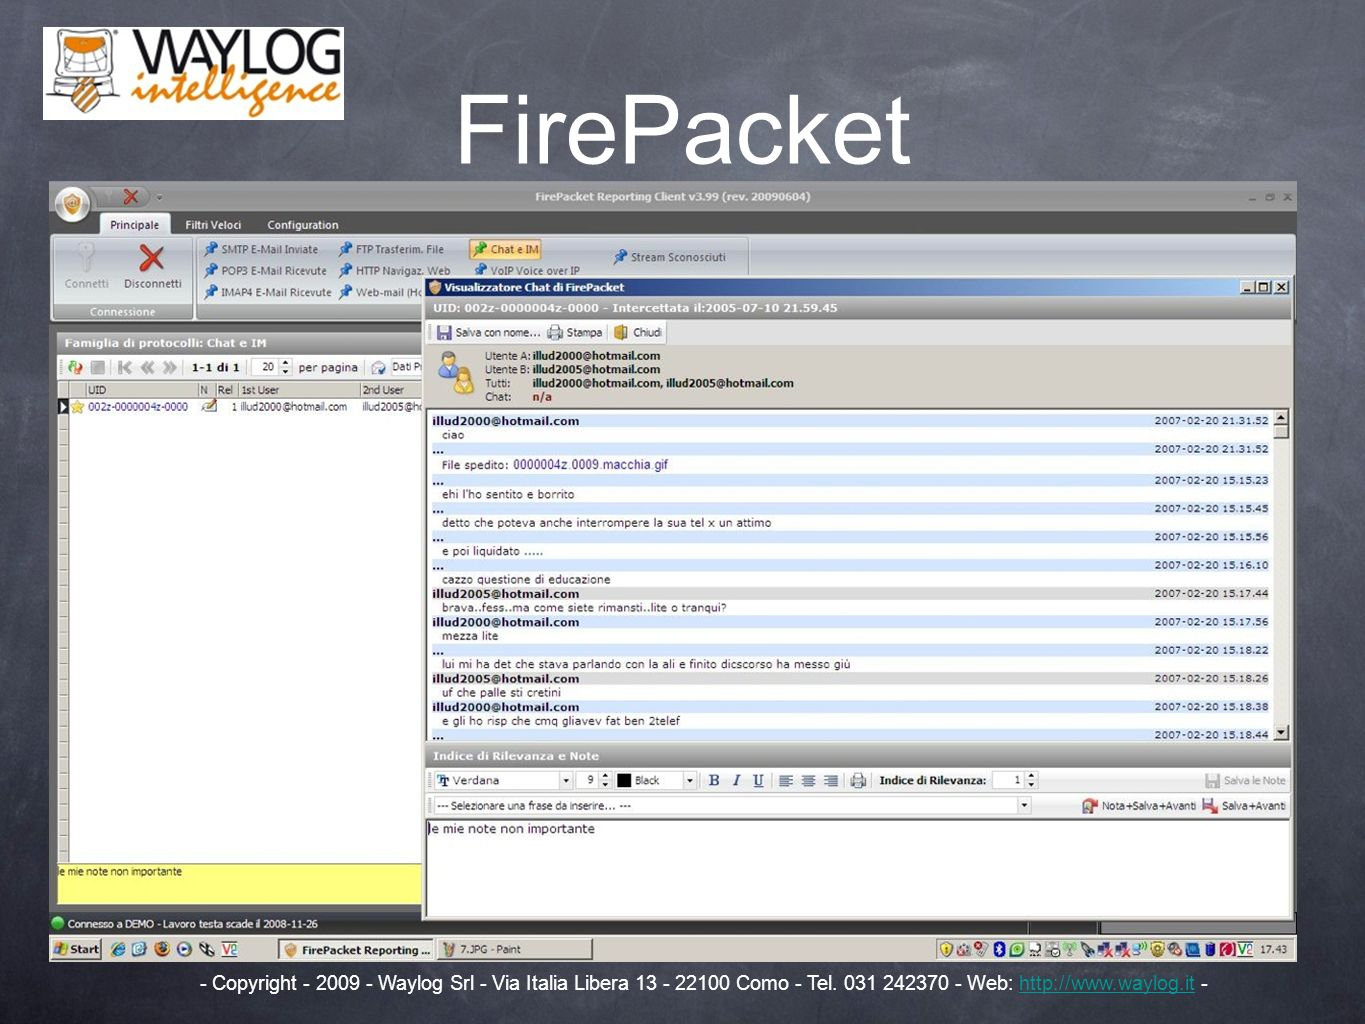 FirePacket - Copyright - 2009 - Waylog Srl - Via Italia Libera 13 - 22100 Como - Tel. 031 242370 - Web: http://www.waylog.it -http://www.waylog.it